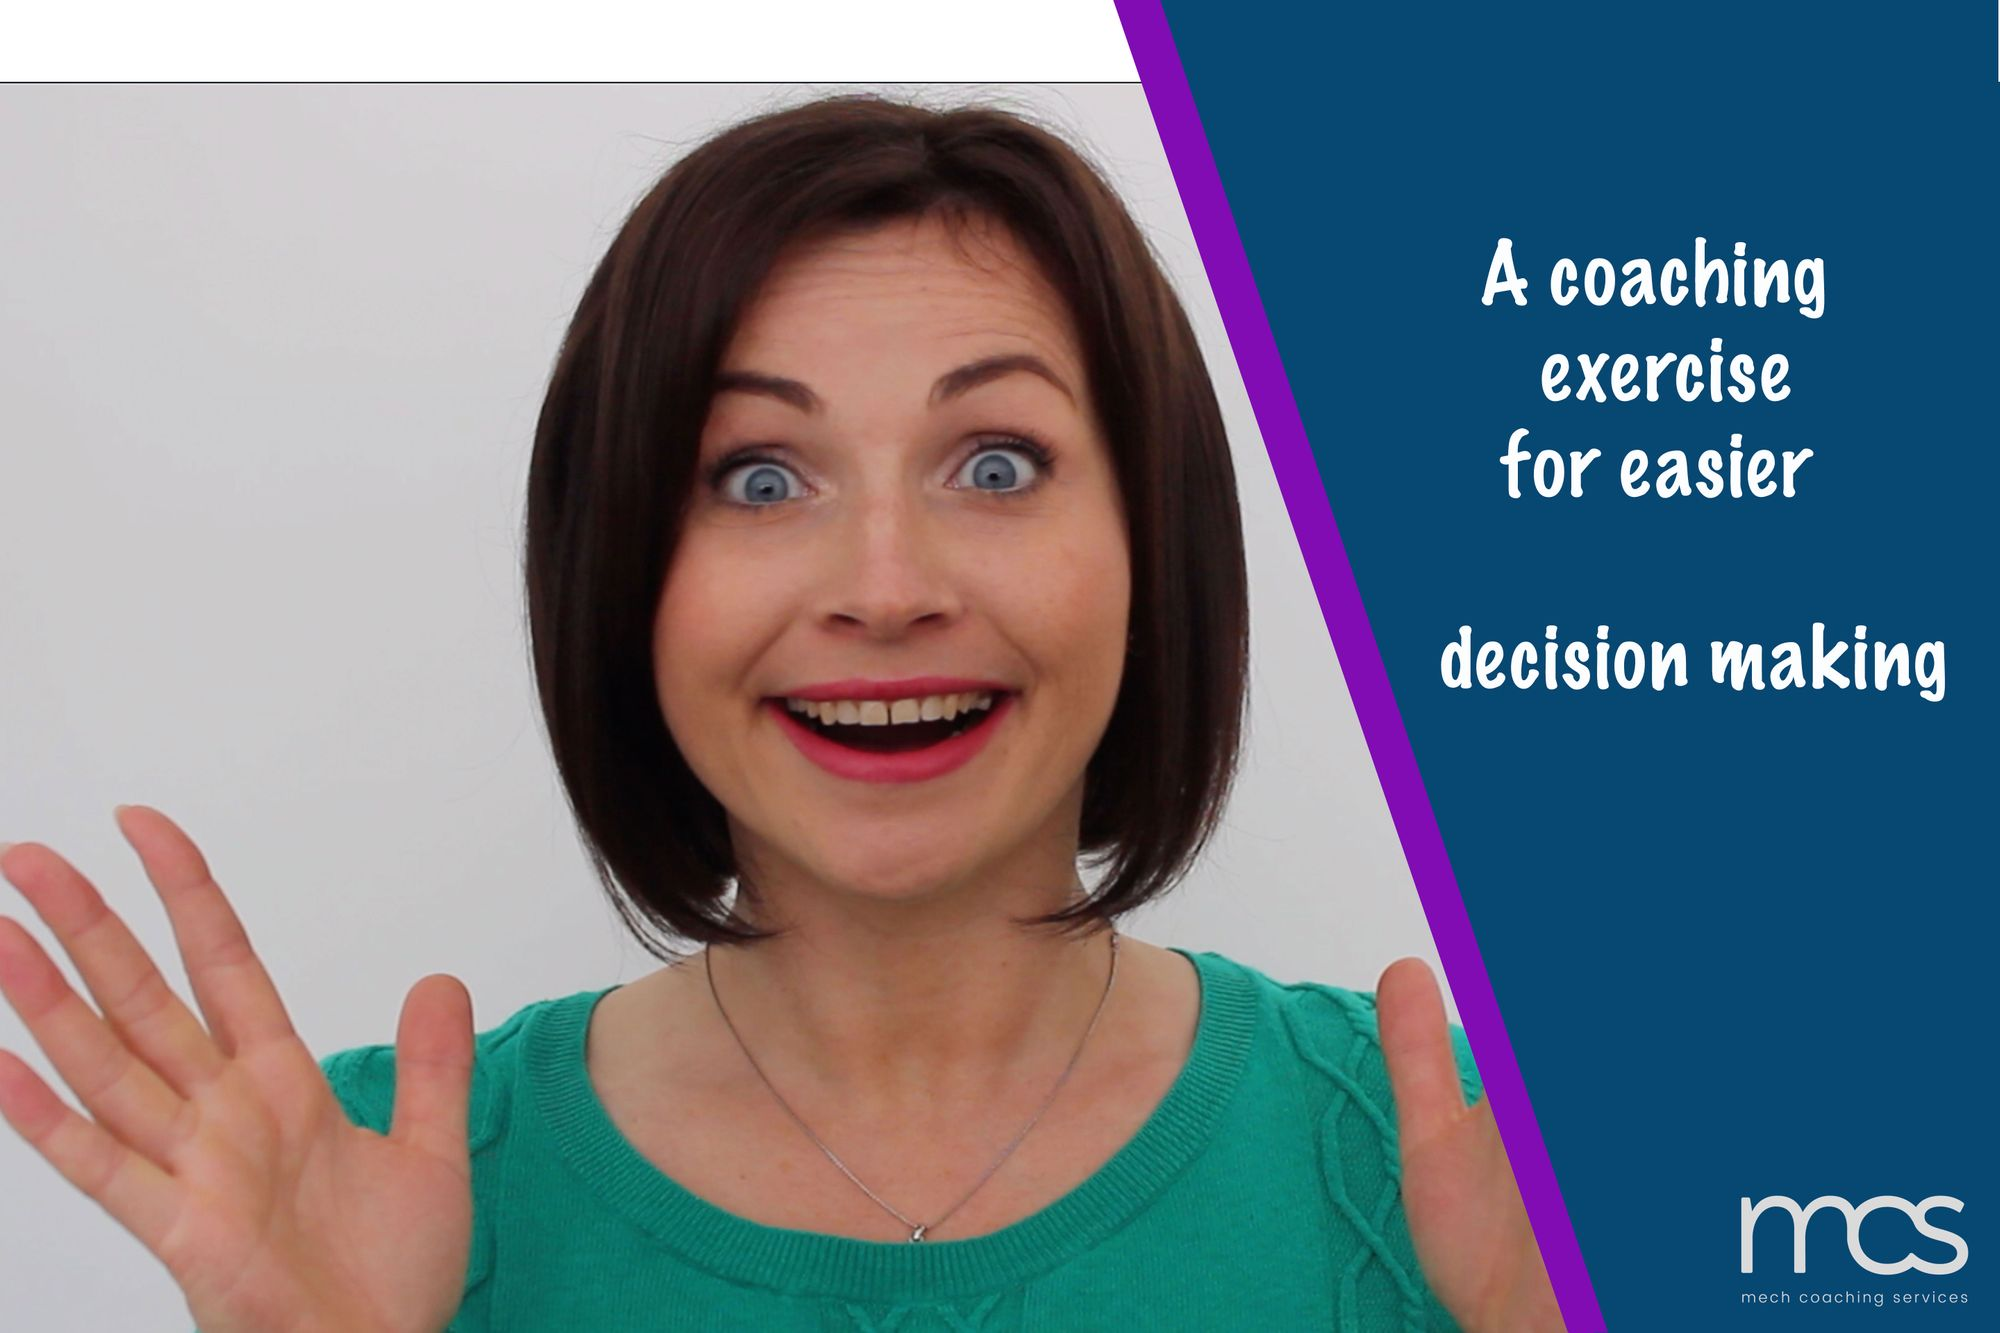 Coaching exercise for easier decision making